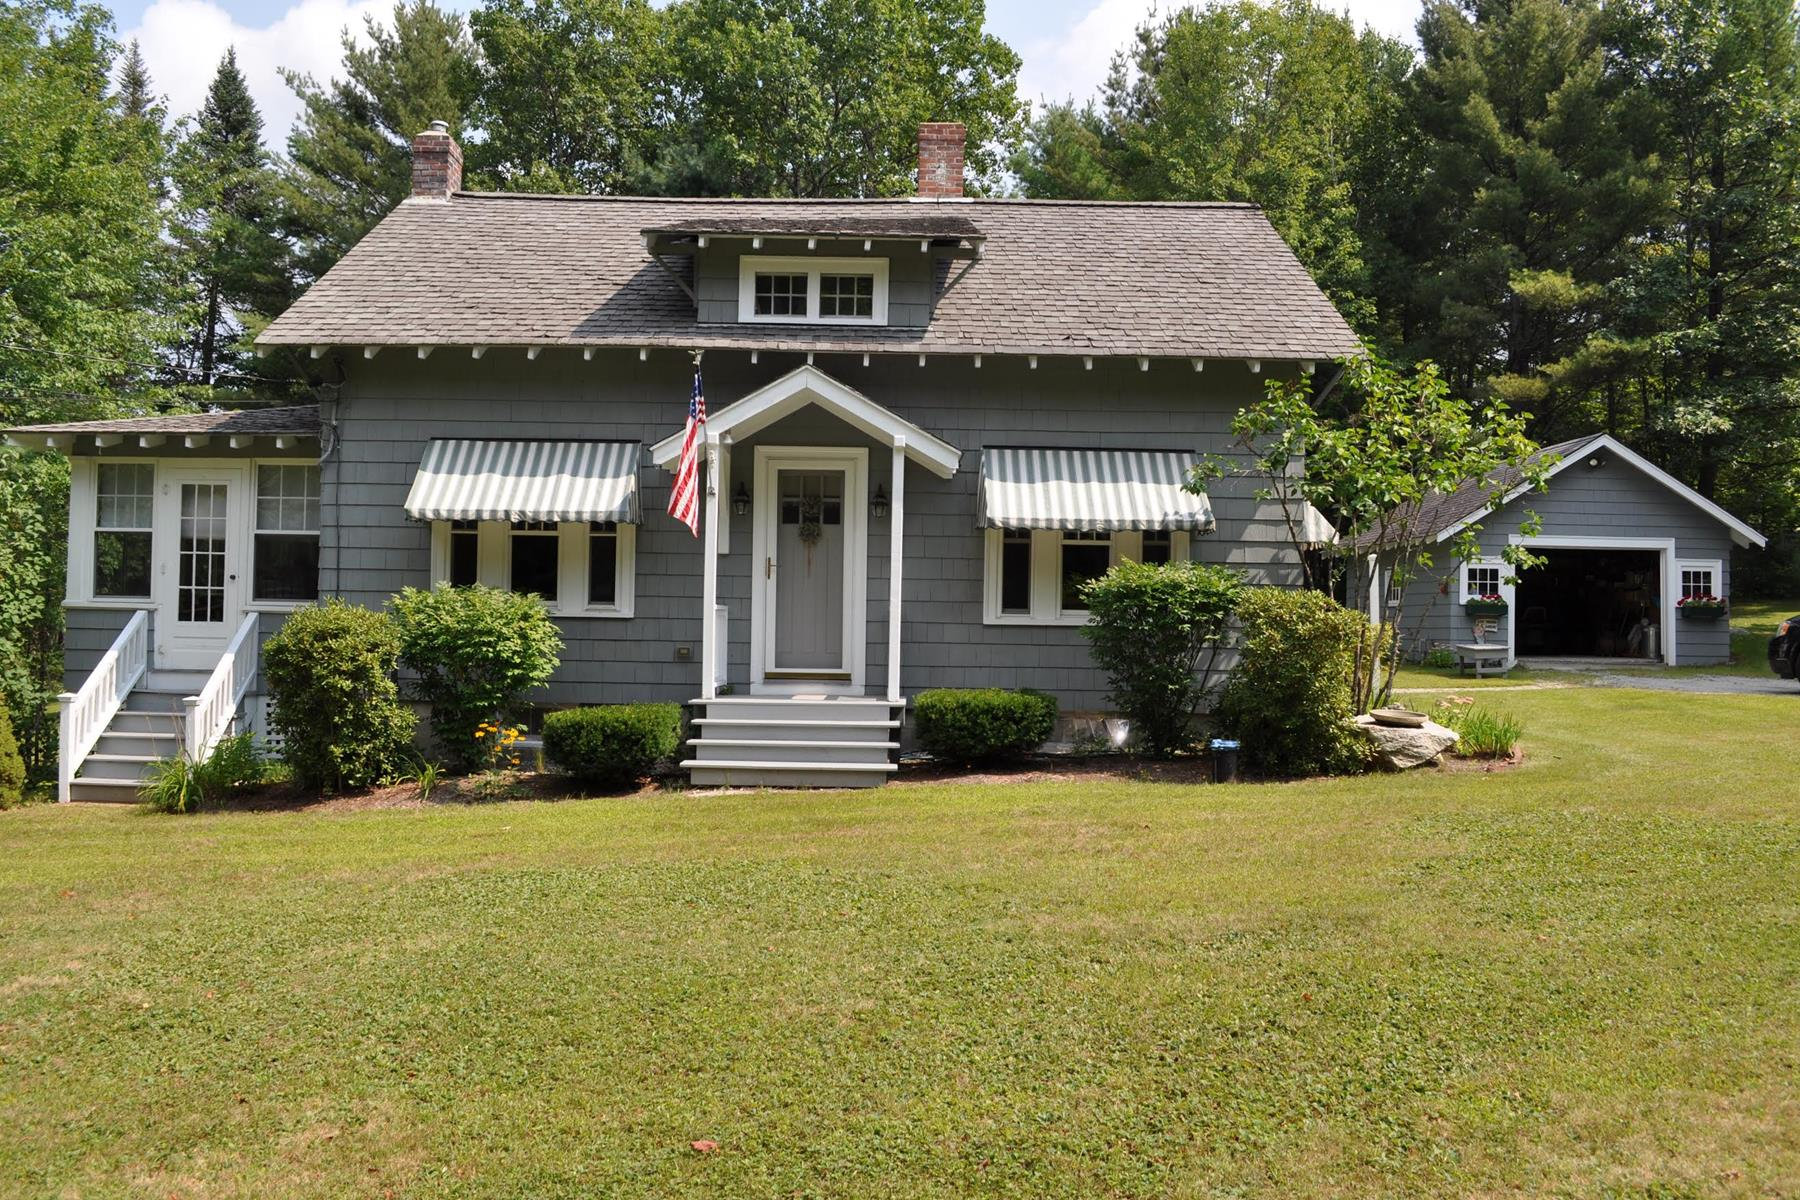 Single Family Home for Sale at 1908 Route 114, Sutton Sutton, New Hampshire 03221 United States